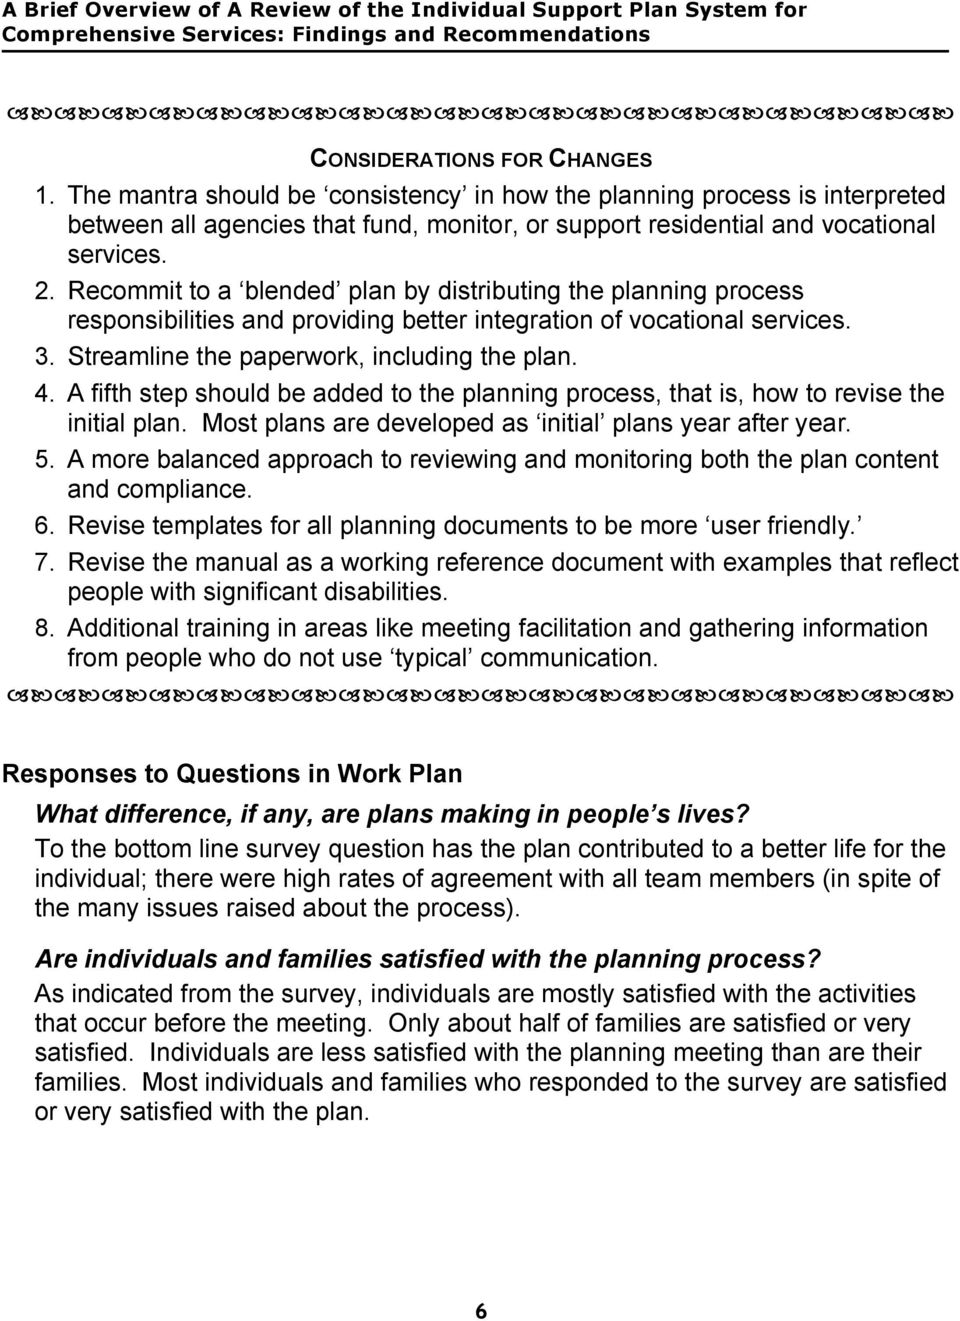 A fifth step should be added to the planning process, that is, how to revise the initial plan. Most plans are developed as initial plans year after year. 5.